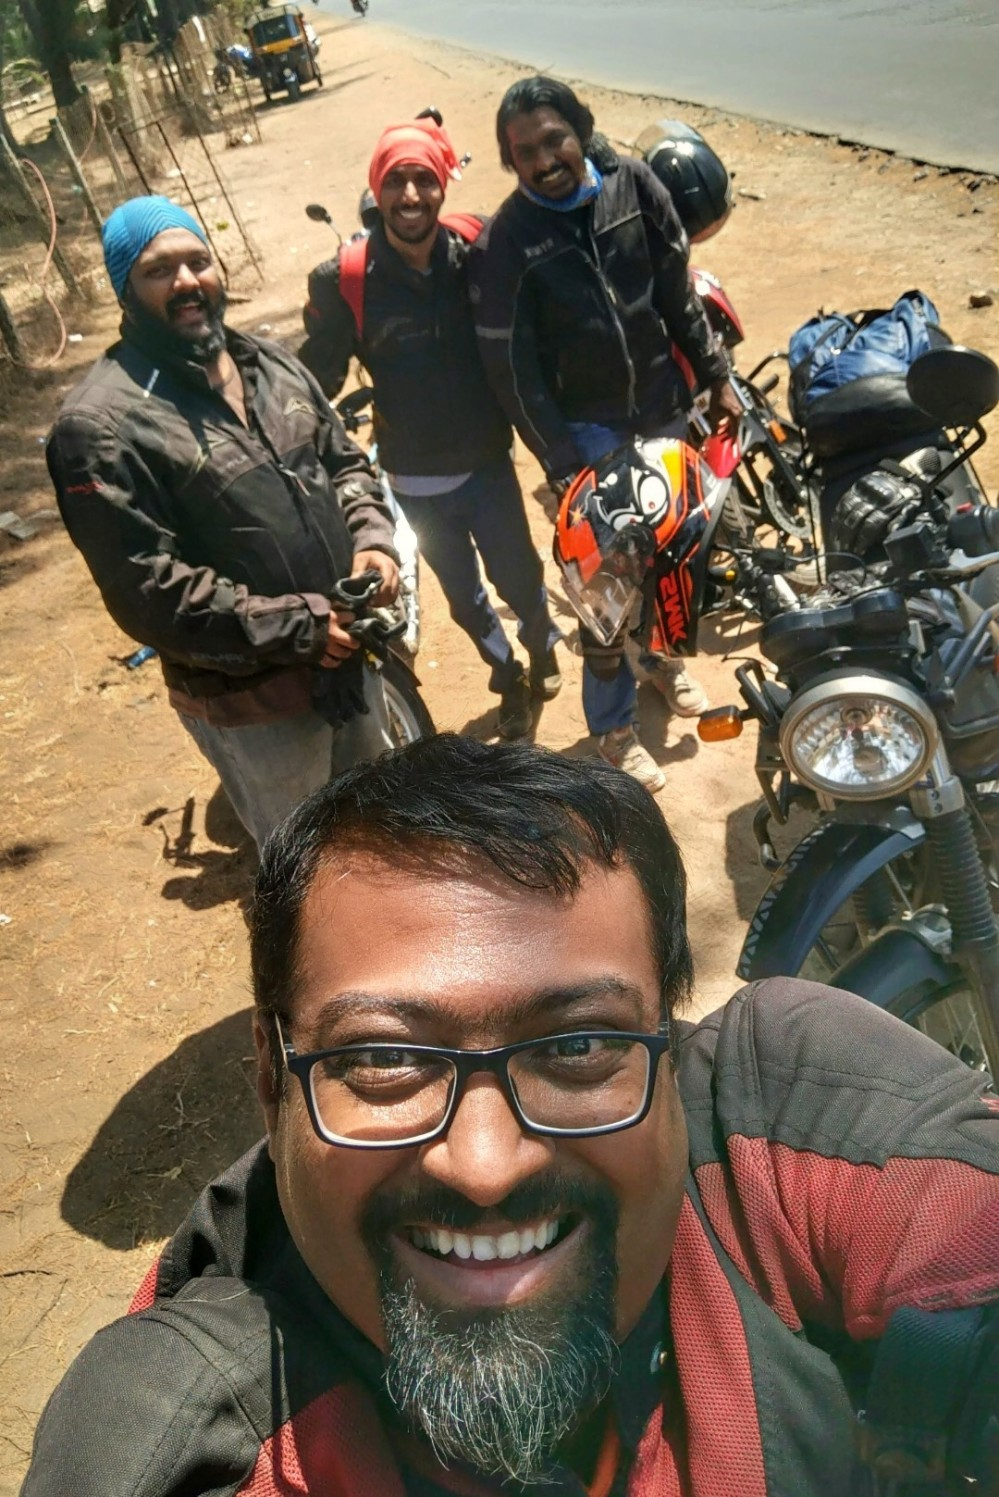 Happy motorcyclists' selfie